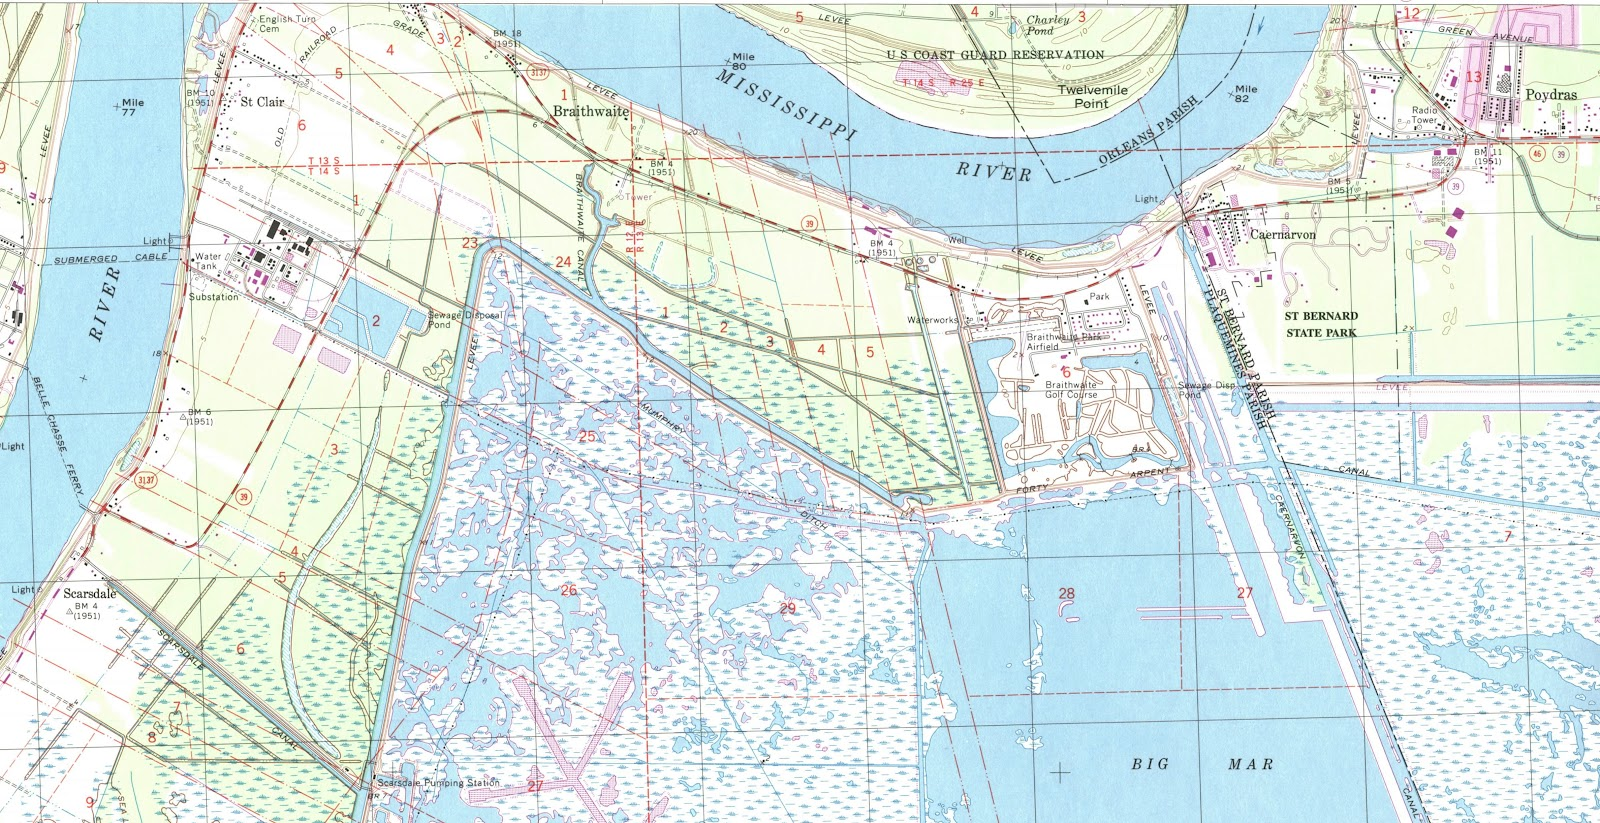 Gis Research And Map Collection New Orleans Plaquemines Parish